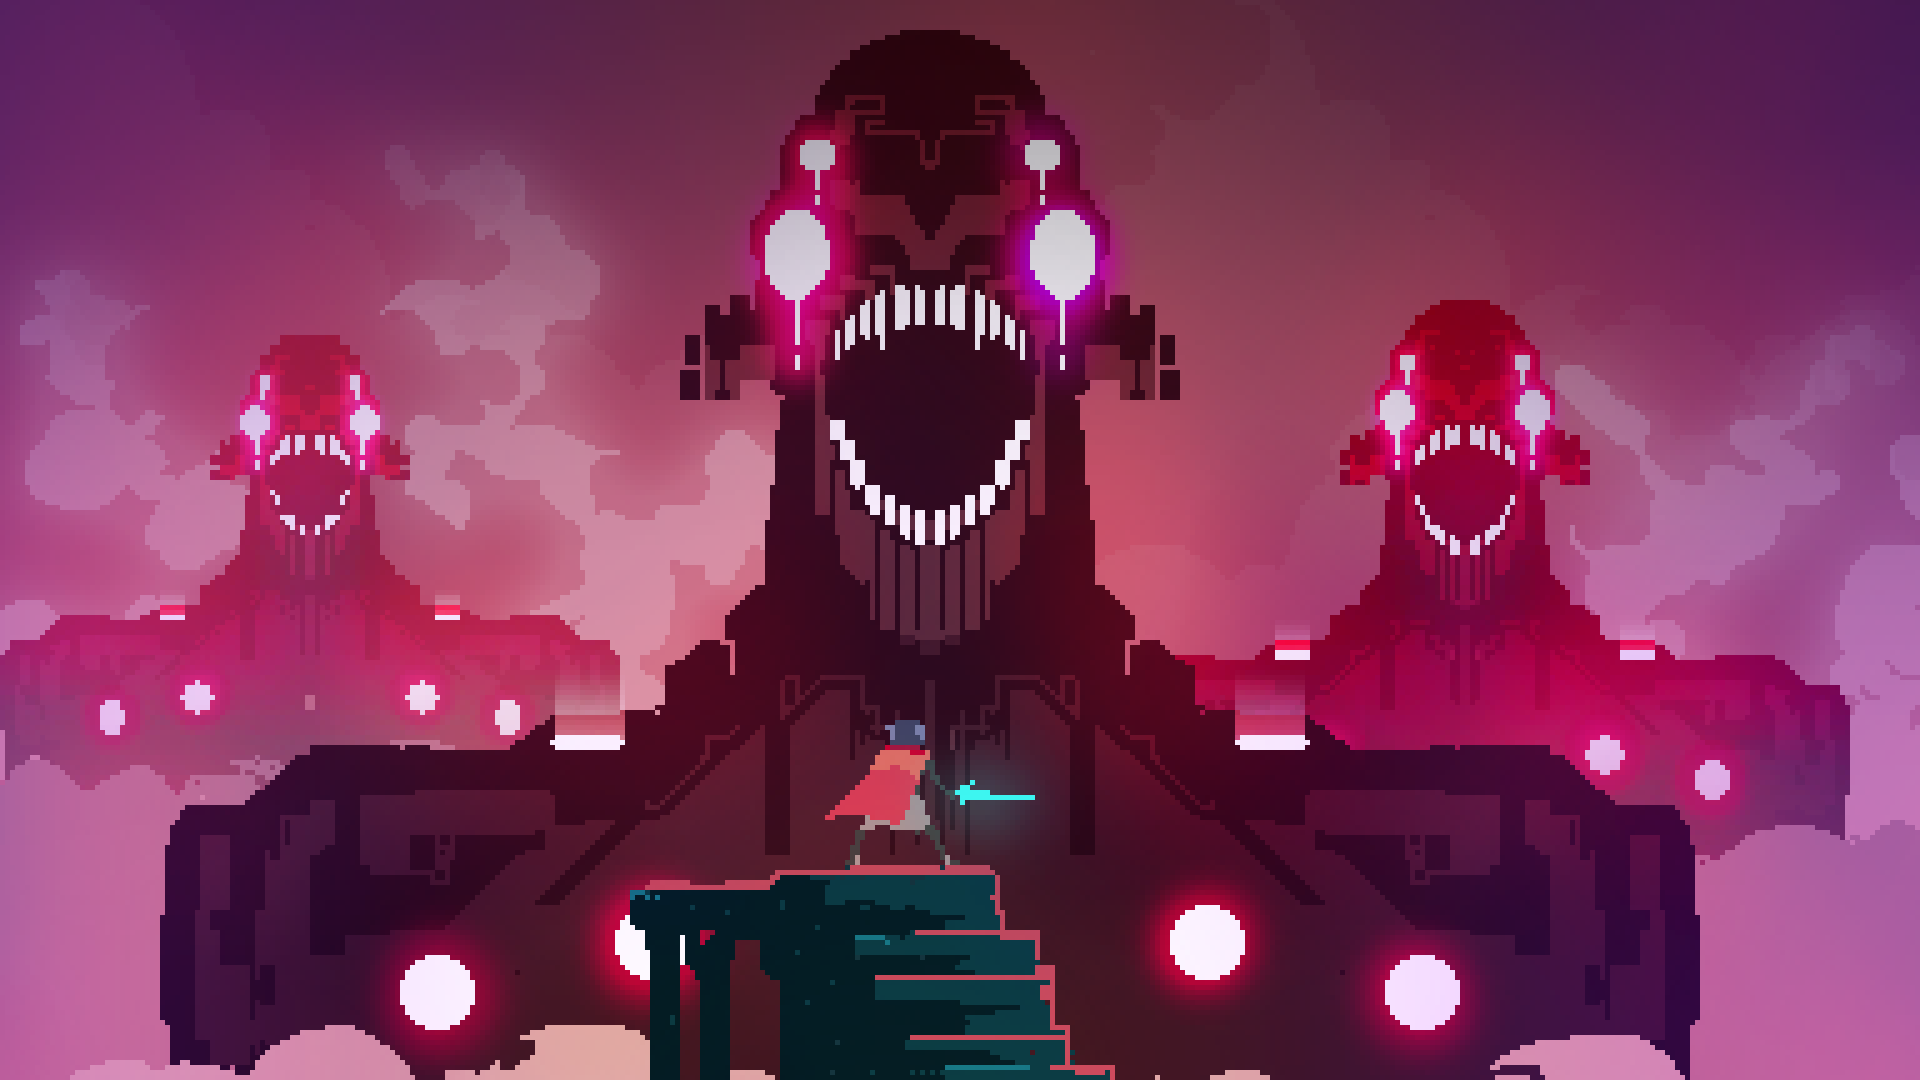 Hyper Light Drifter Video Game Wallpaper 61523 1920x1080px 1920x1080